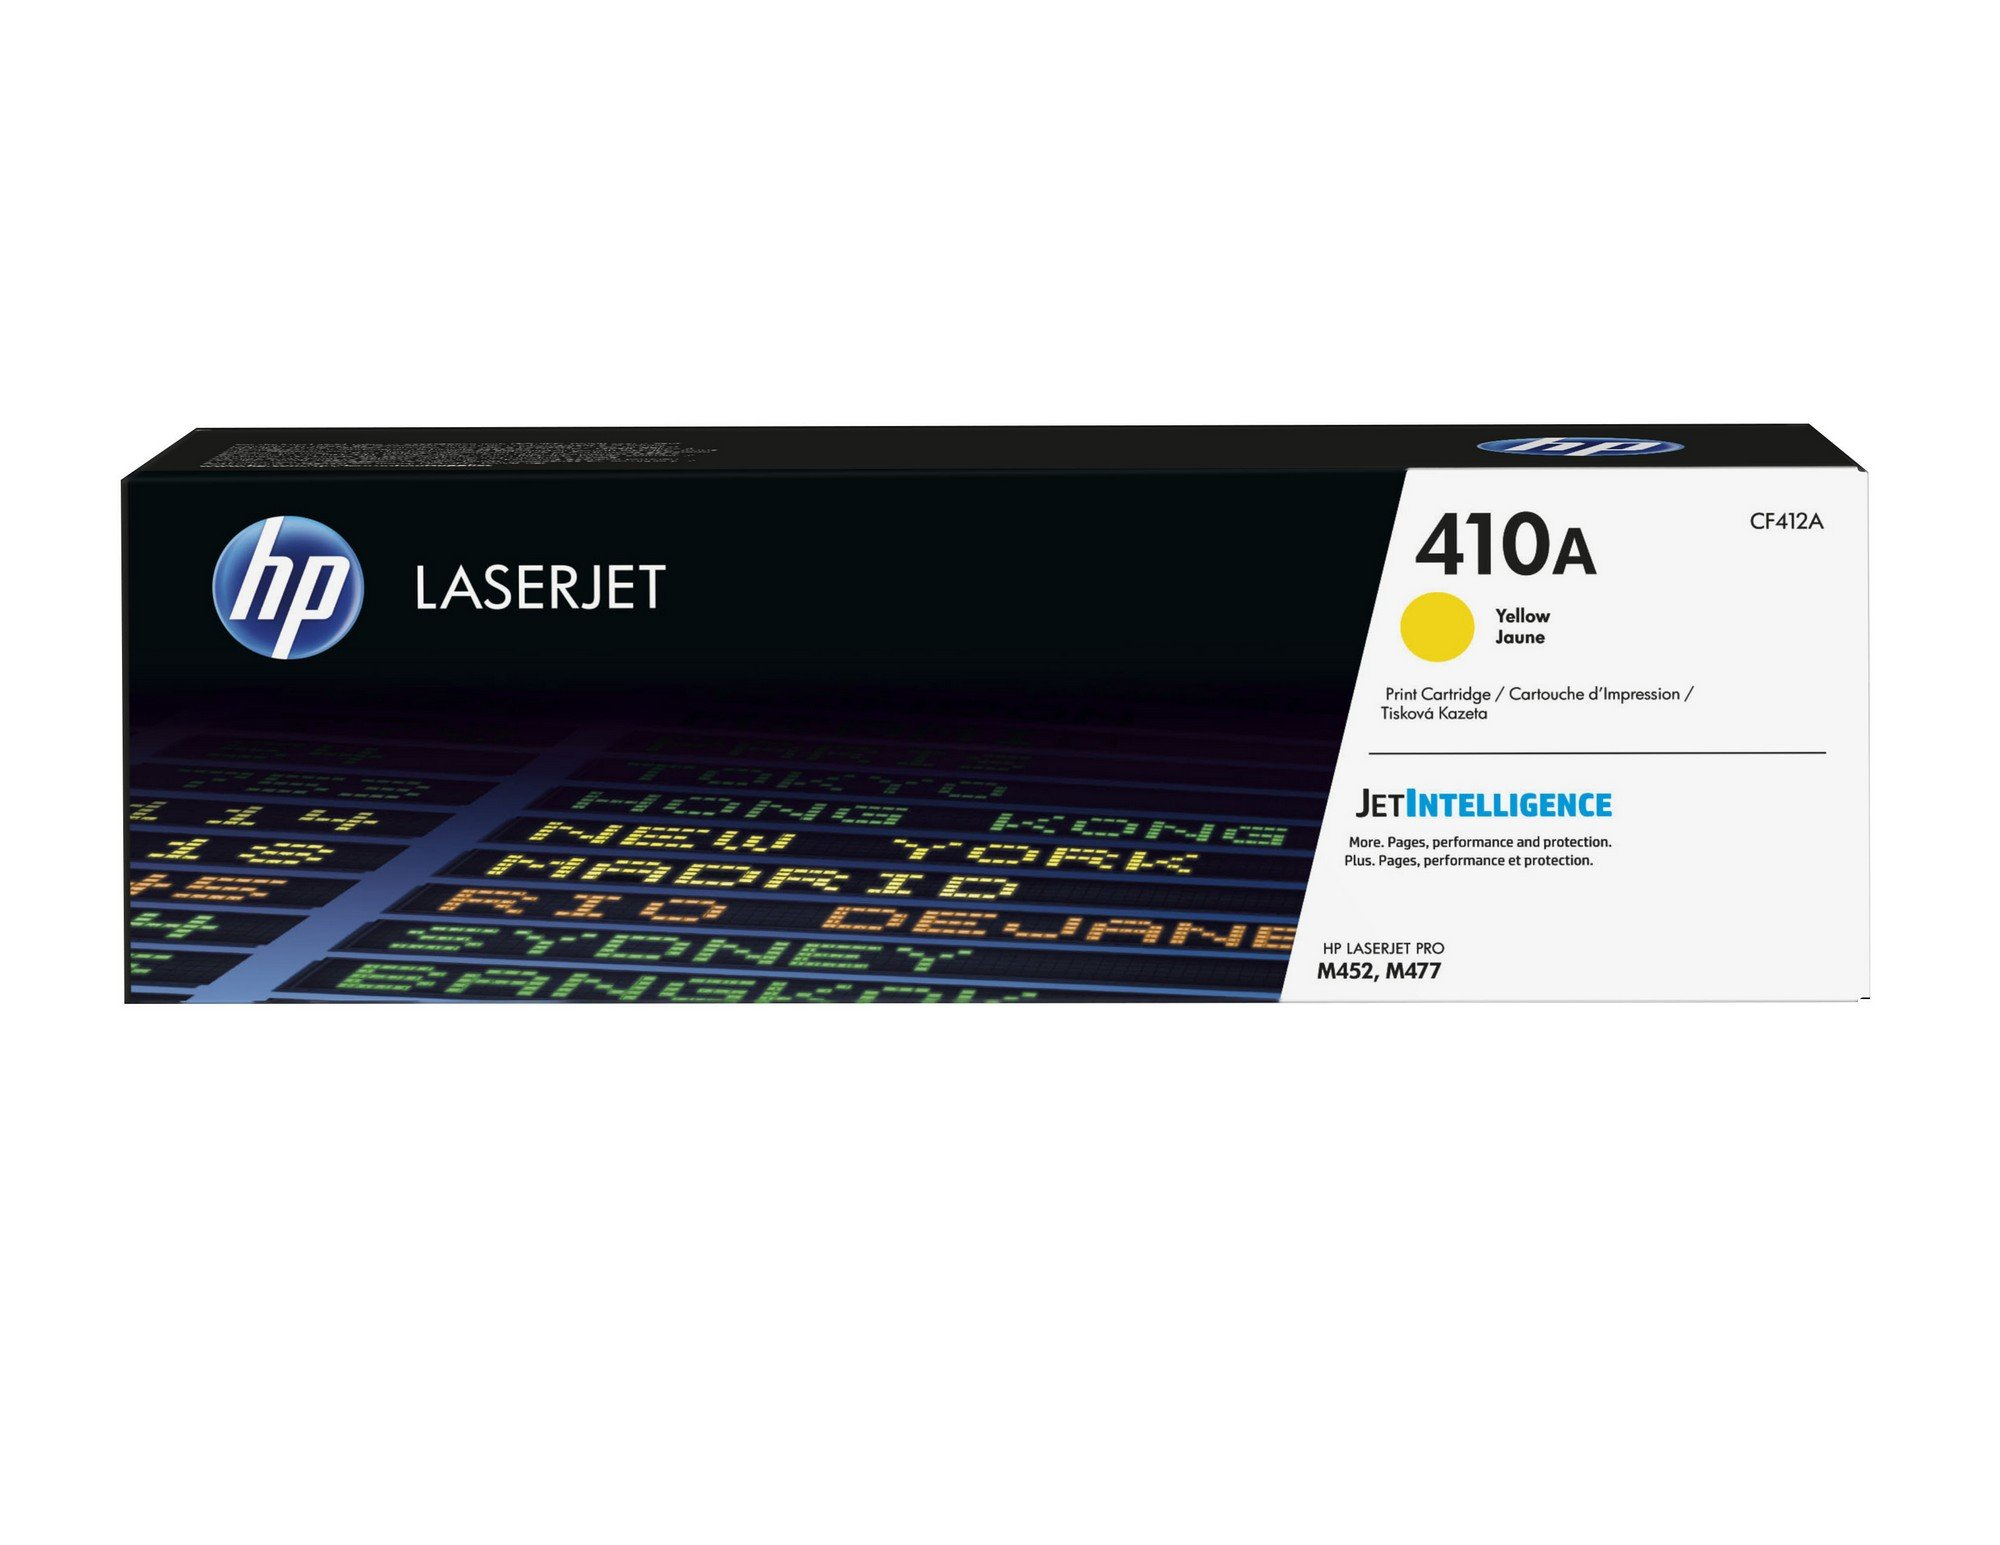 HP 410A (CF412A) Toner Cartridge, Yellow for HP Color LaserJet Pro M452dn, M452dw, M452nw, MFP M377dw, MFP M477fdn, MFP M477fdw, MFP M477fnw by HP